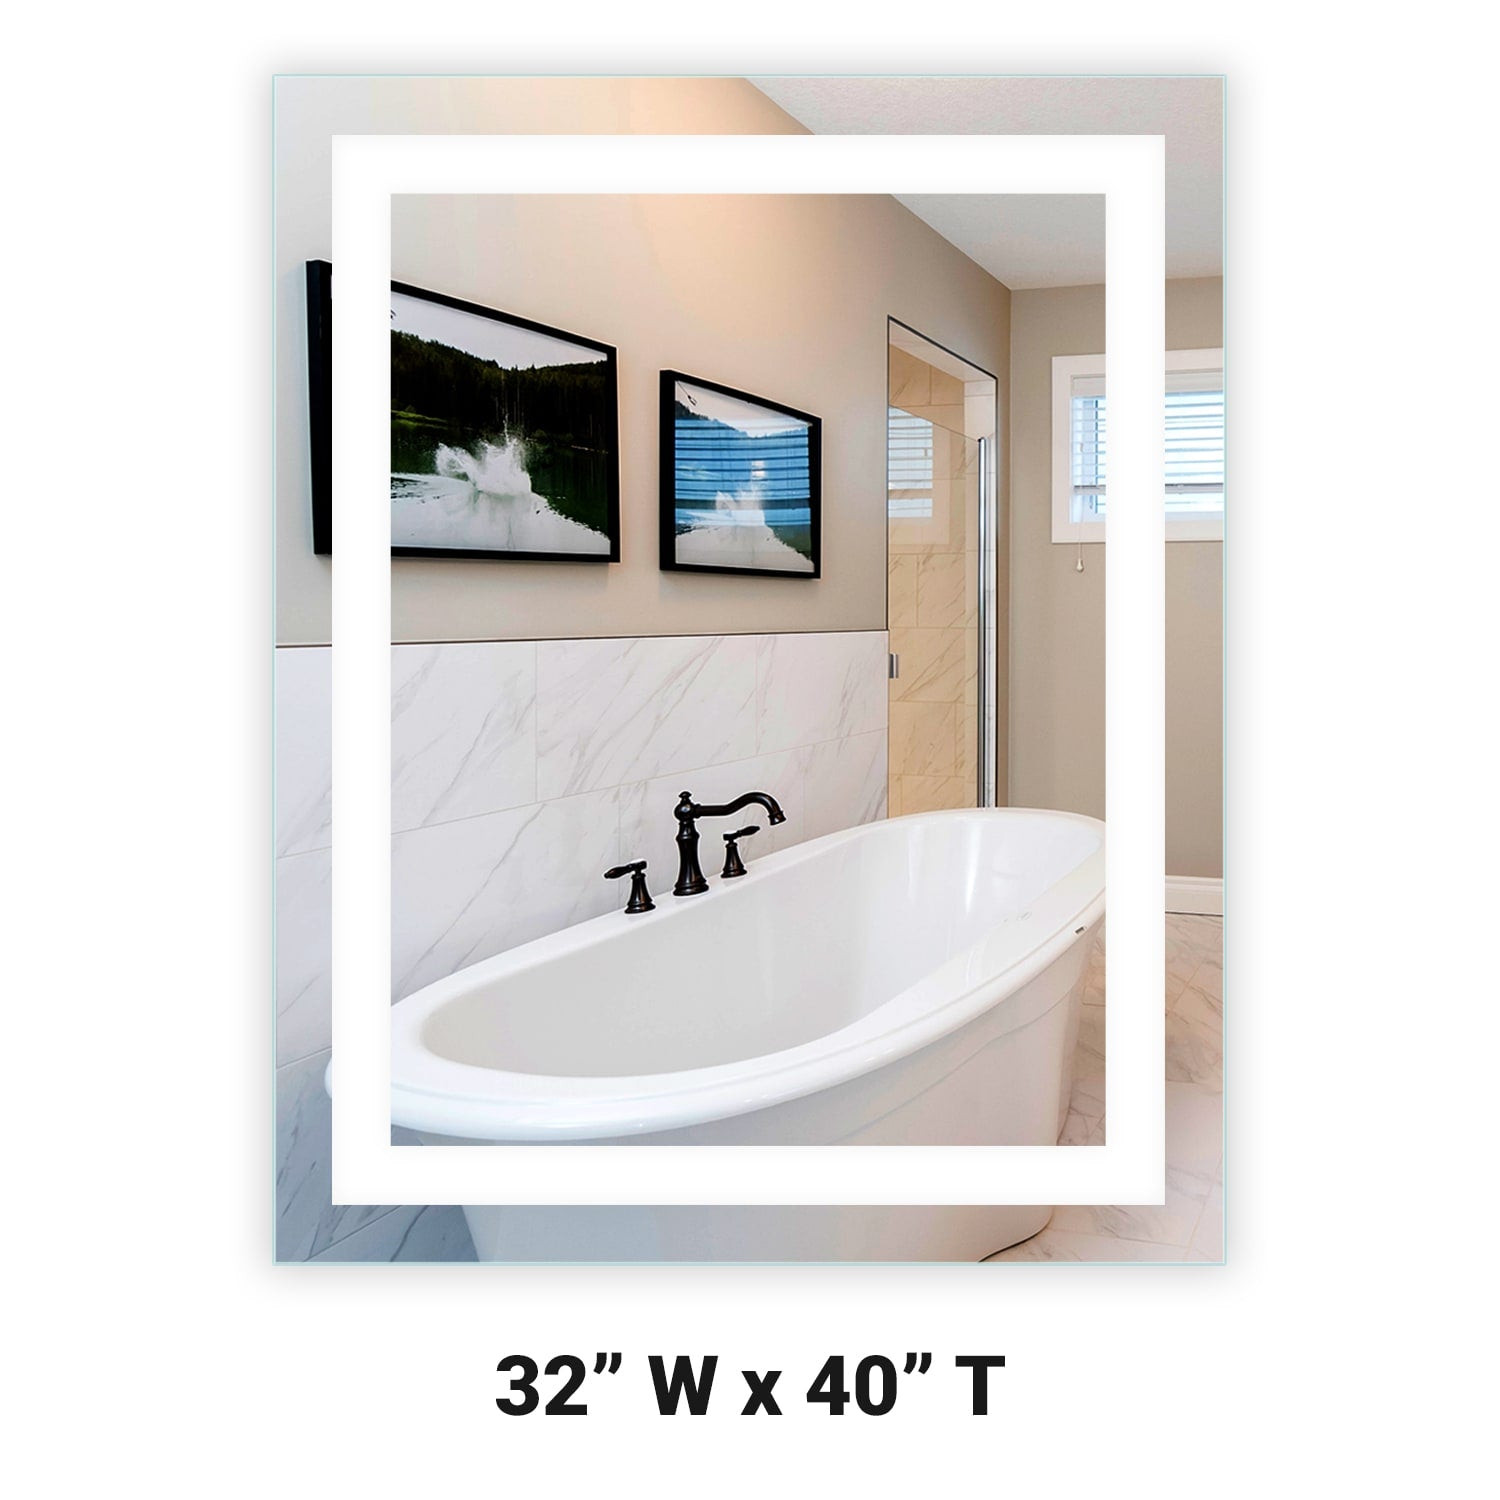 Front Lighted Led Bathroom Vanity Mirror 32 X 40 Rectangular Mirrors Marble